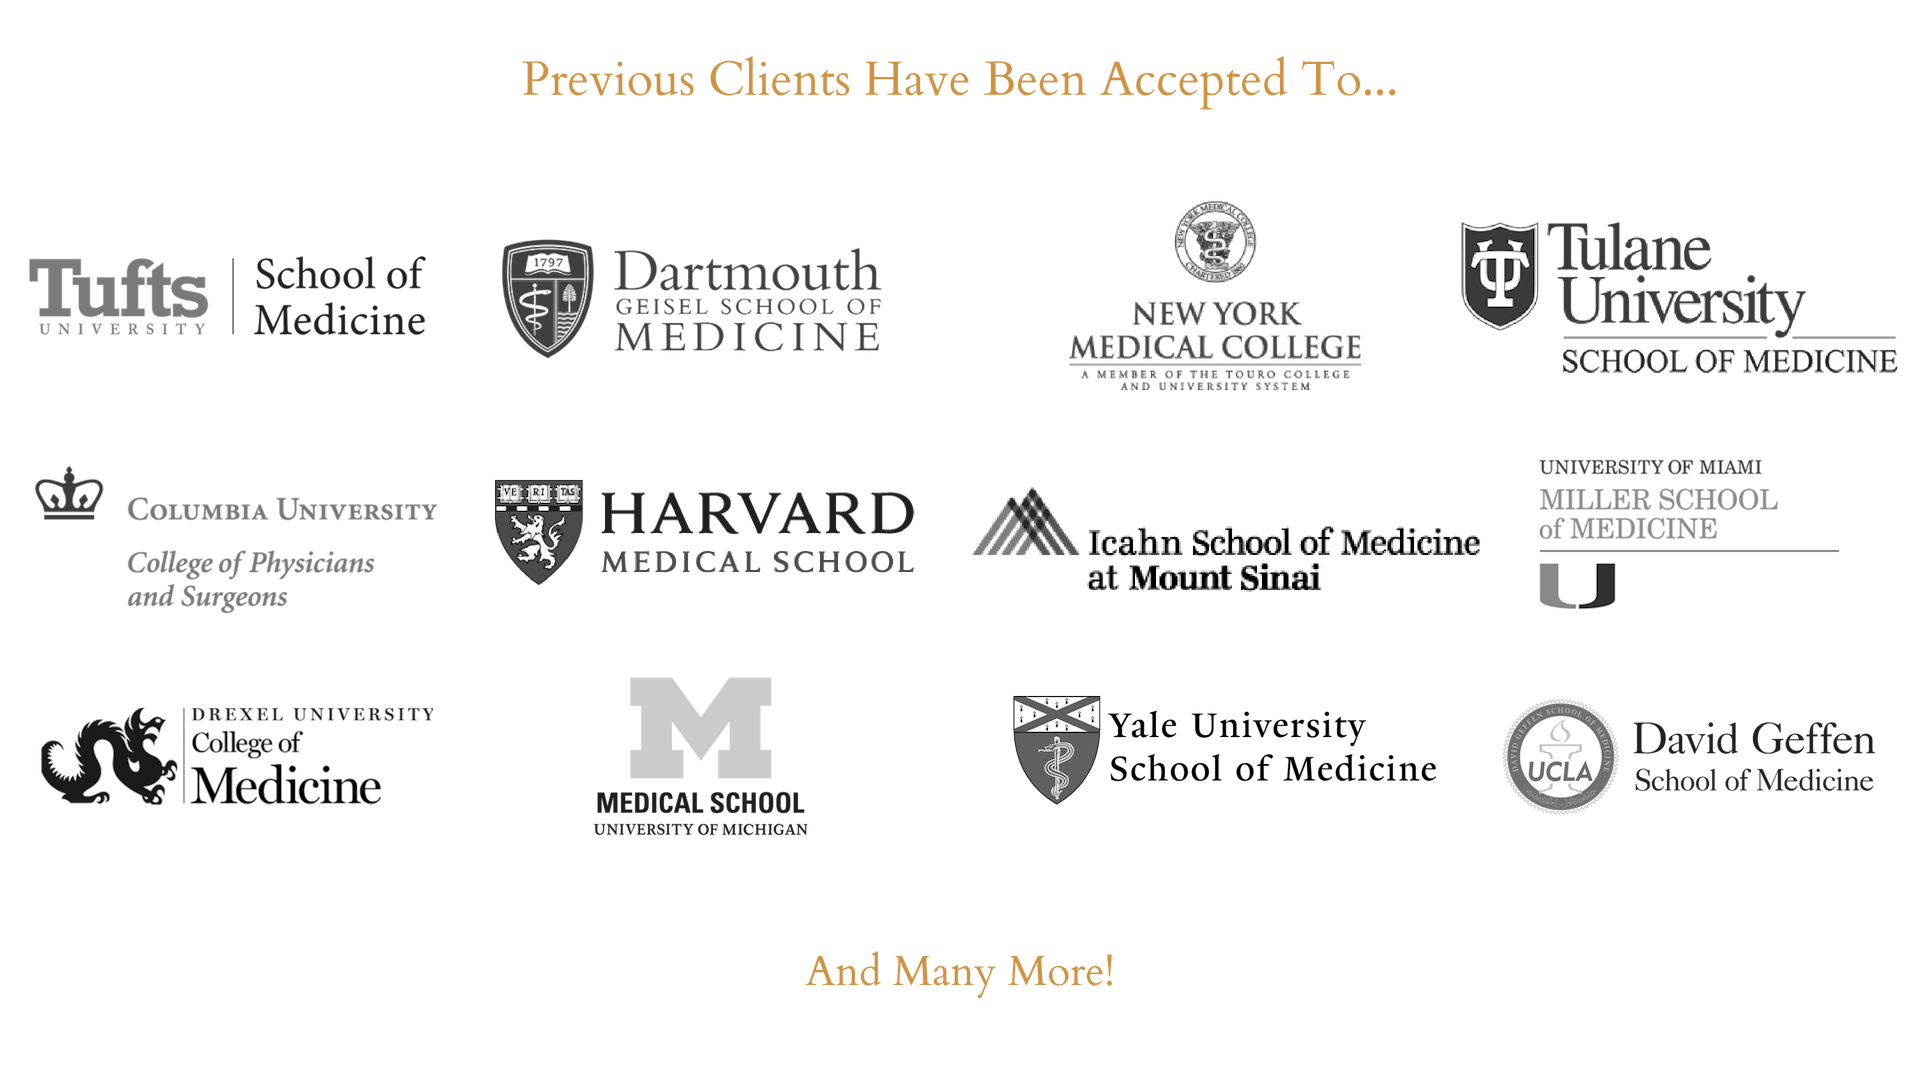 Previous Institutions (1).png